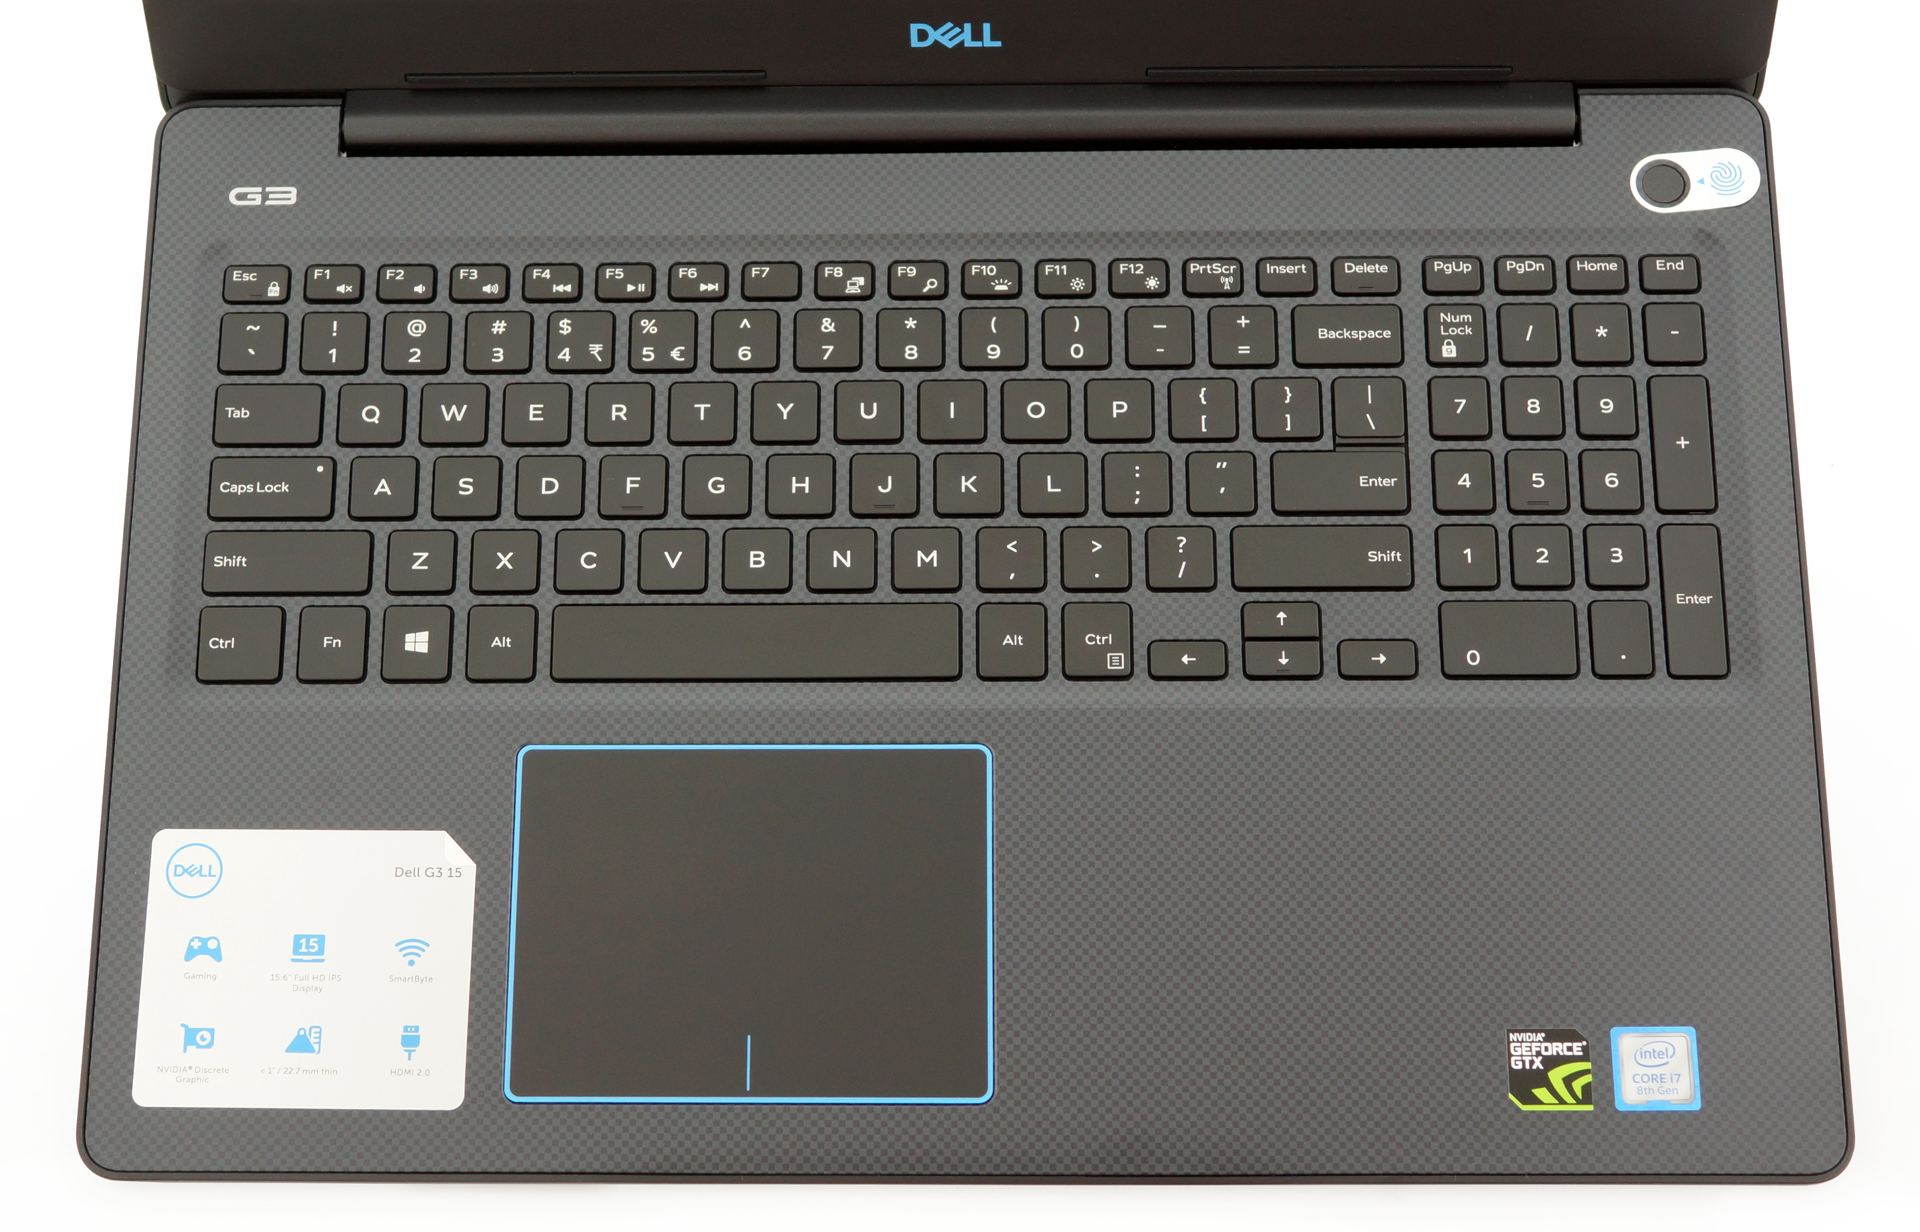 Dell G3 15 3579 review – great performance at a reasonable price